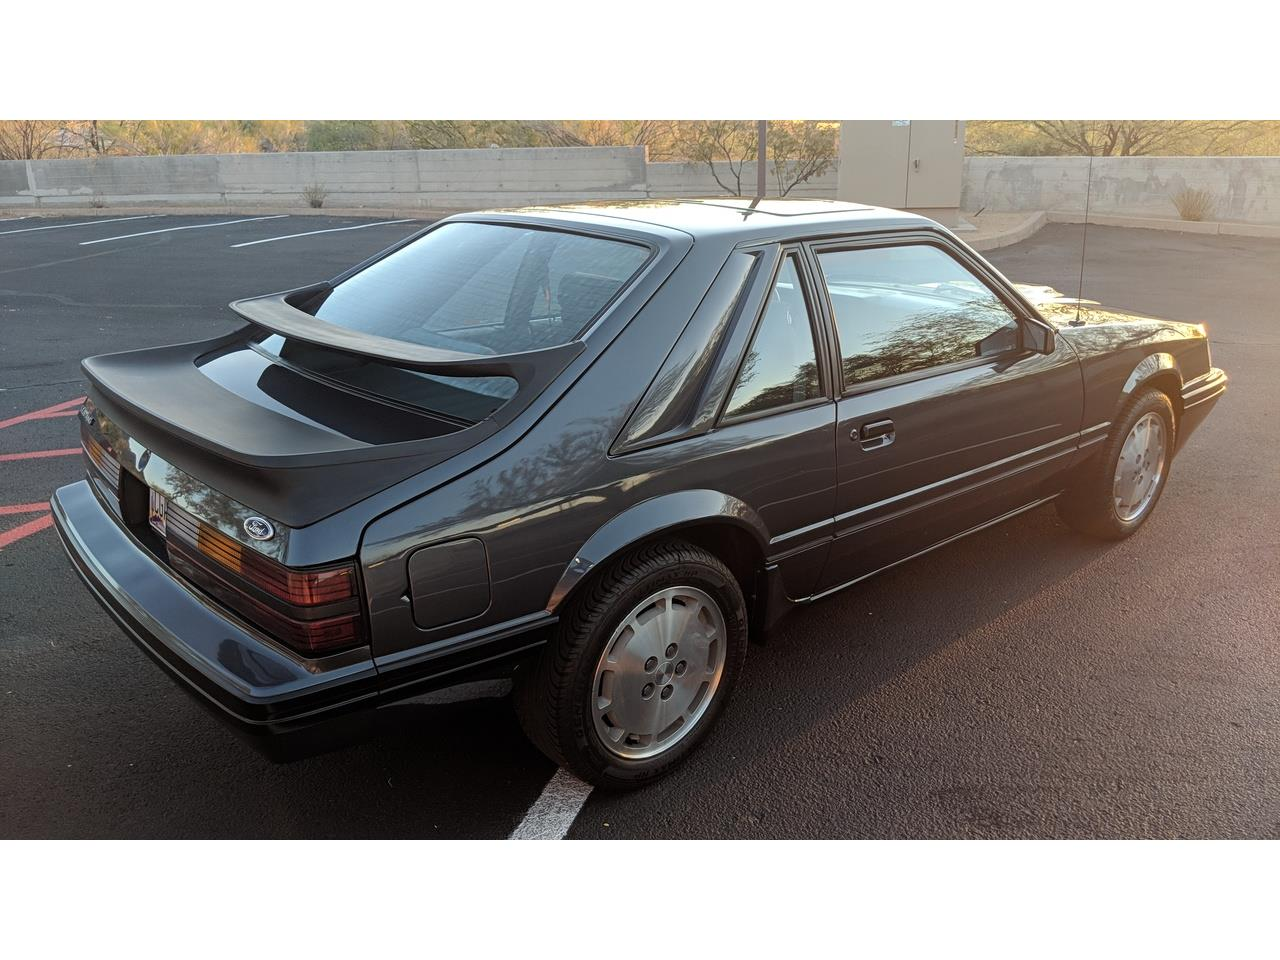 Large Picture of '84 Mustang SVO - $15,800.00 - MXZ6